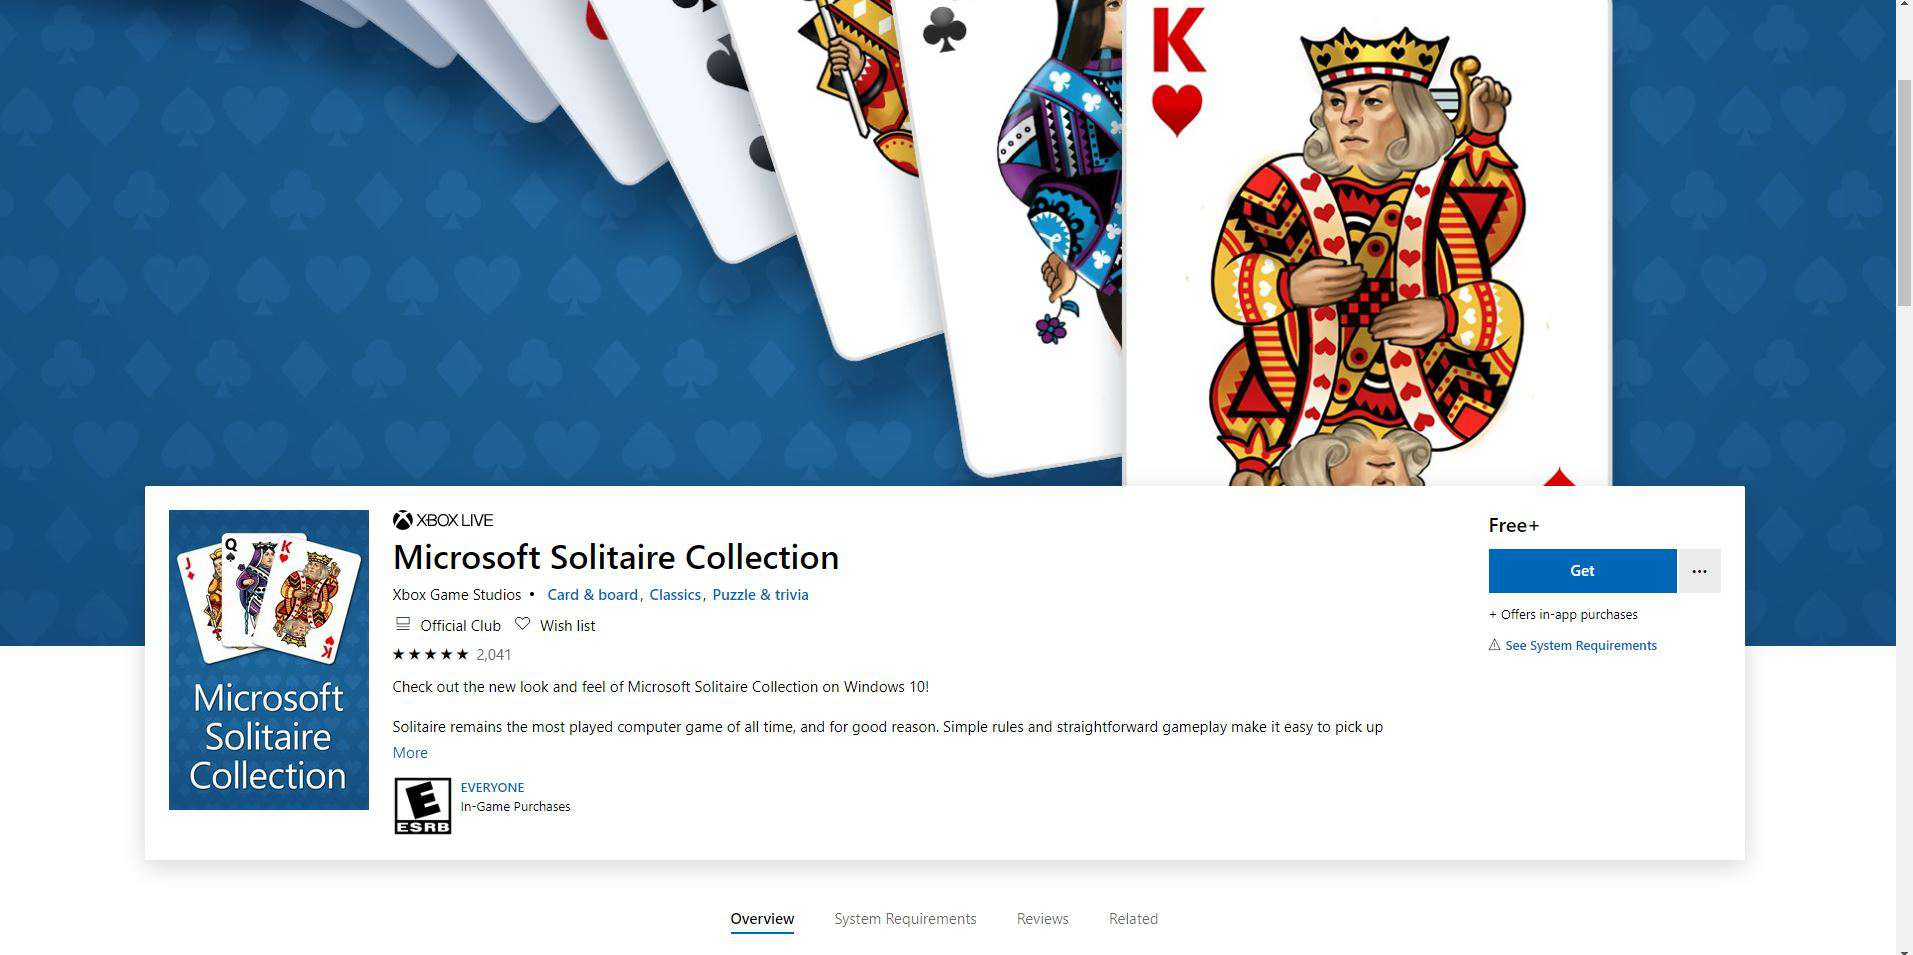 Screenshot of MS Solitaire Collection page